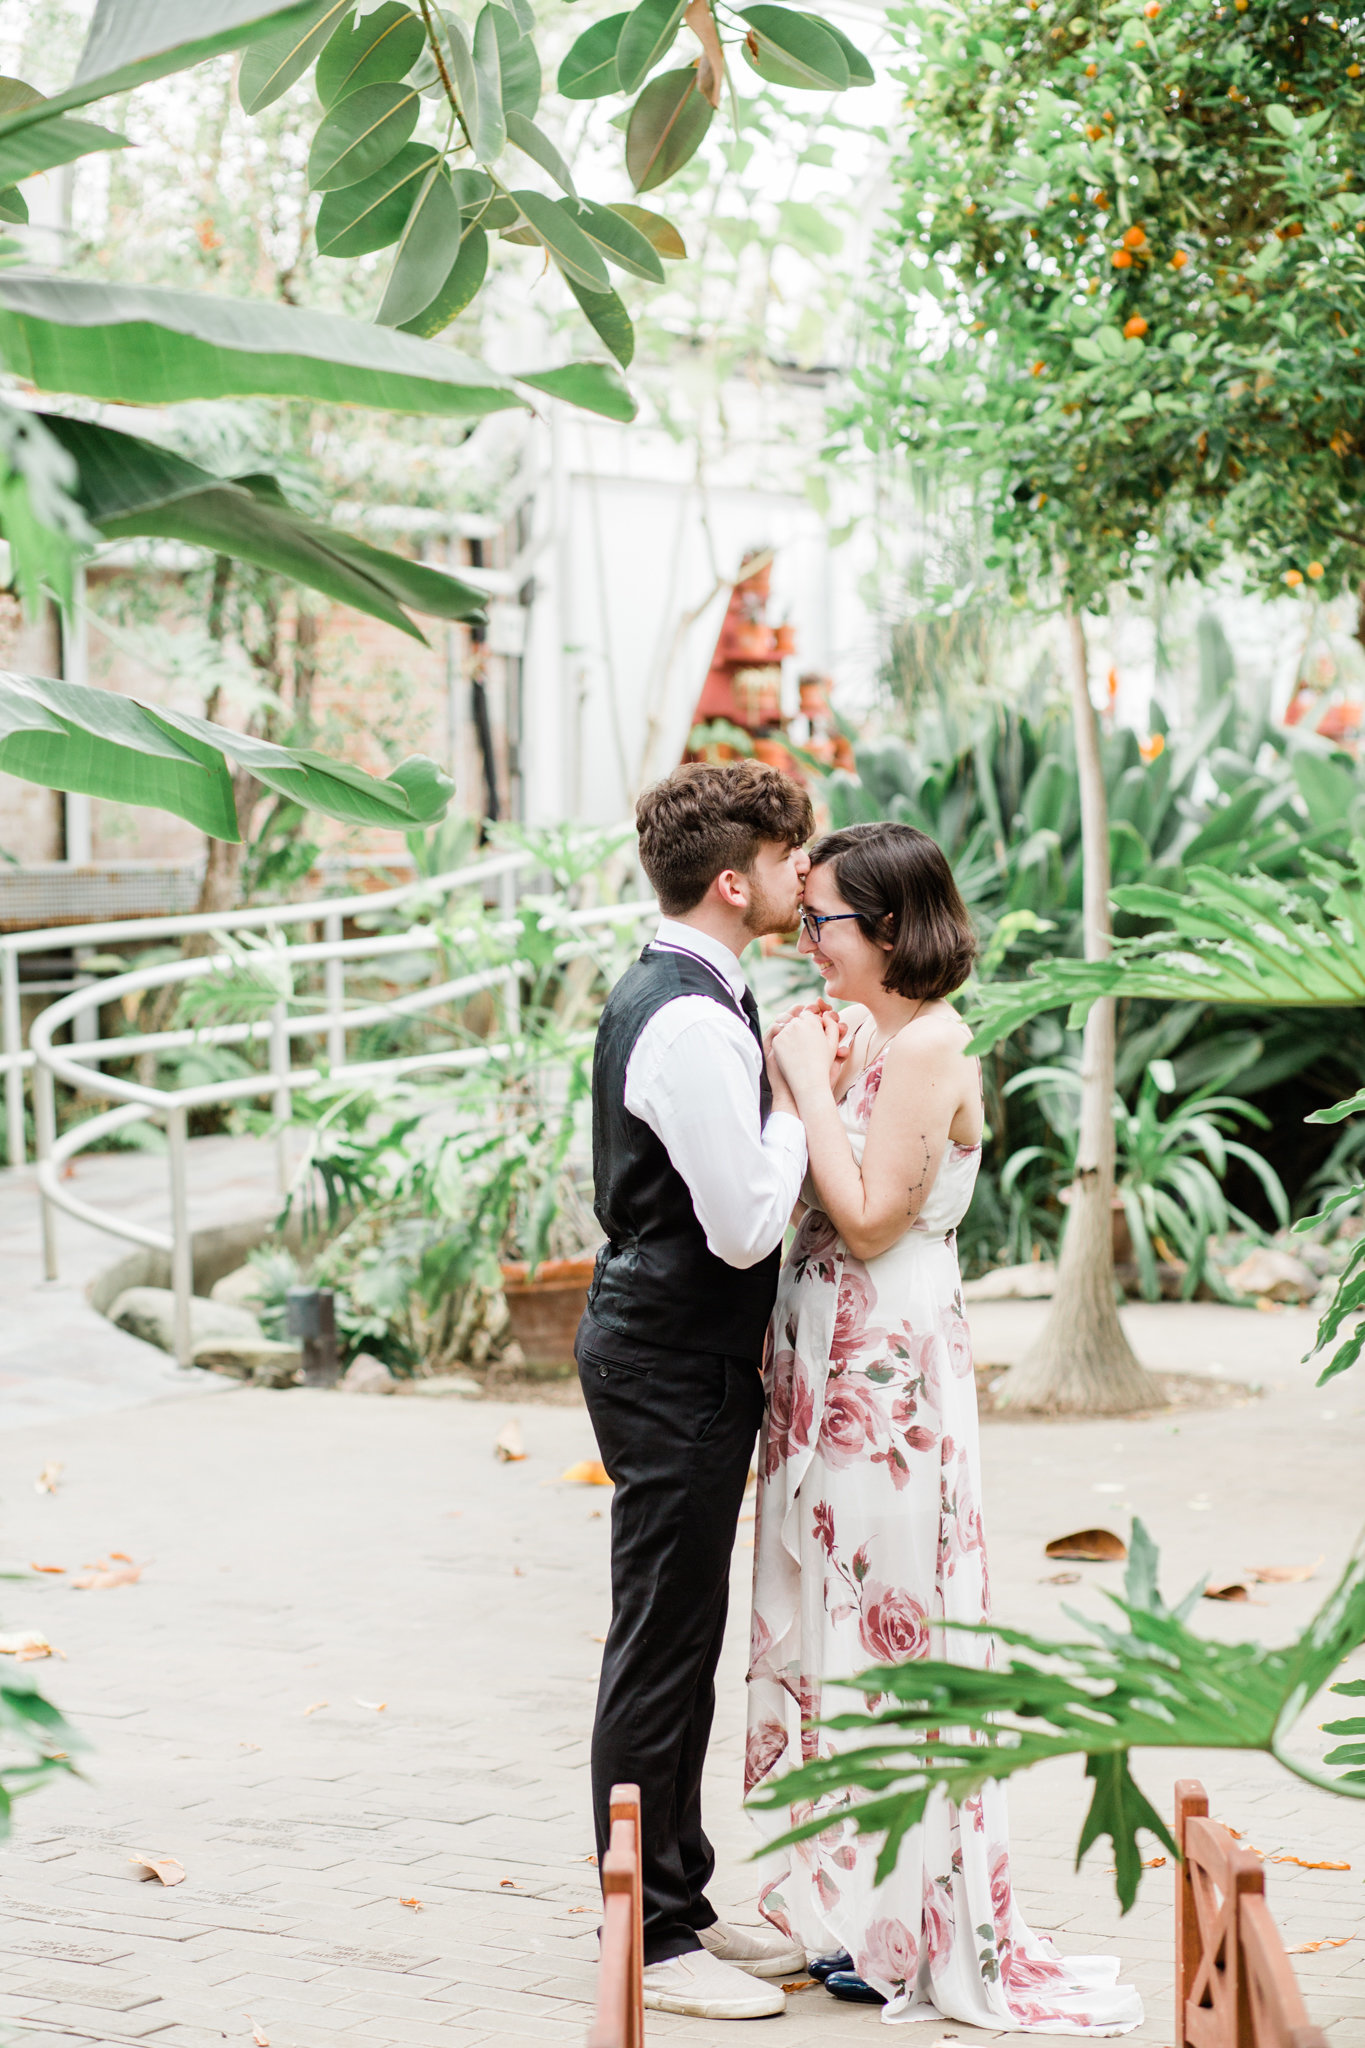 Cassidy-Sam-Potawatomi-Conservatory-South-Bend-Indiana-Engagement-Session_0014